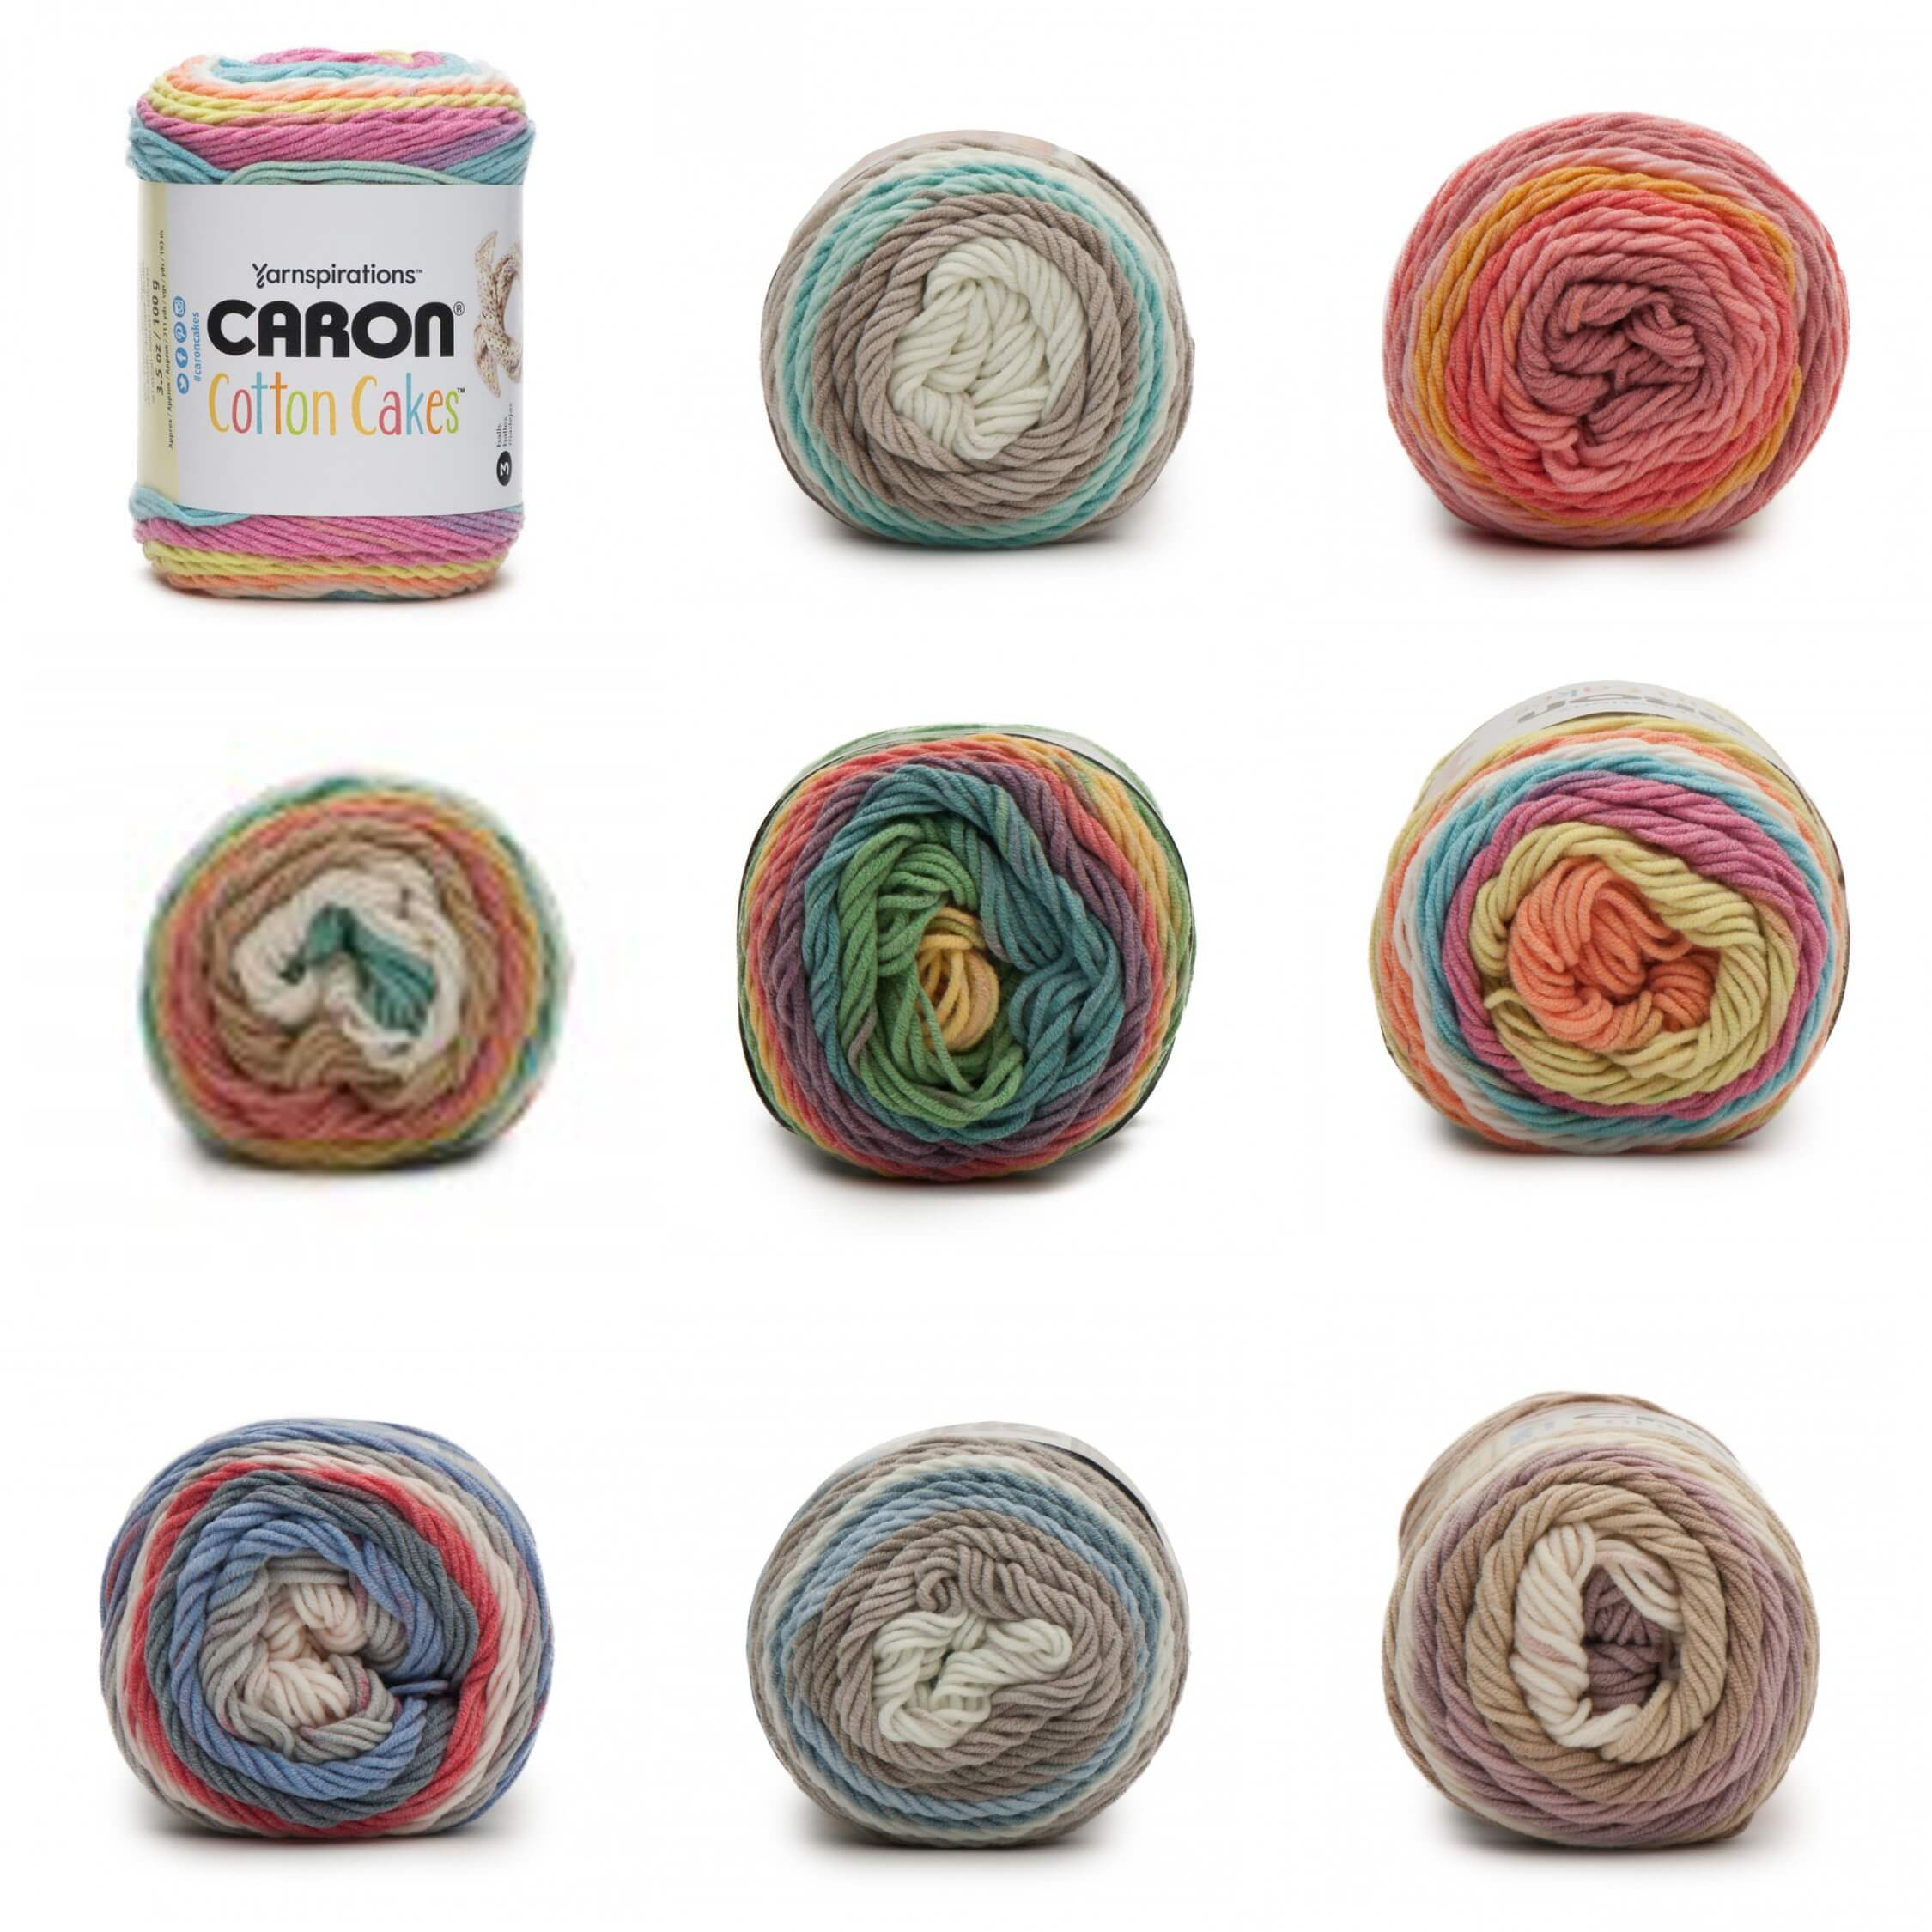 Garden Oasis Caron Cotton Cakes 100g Ball